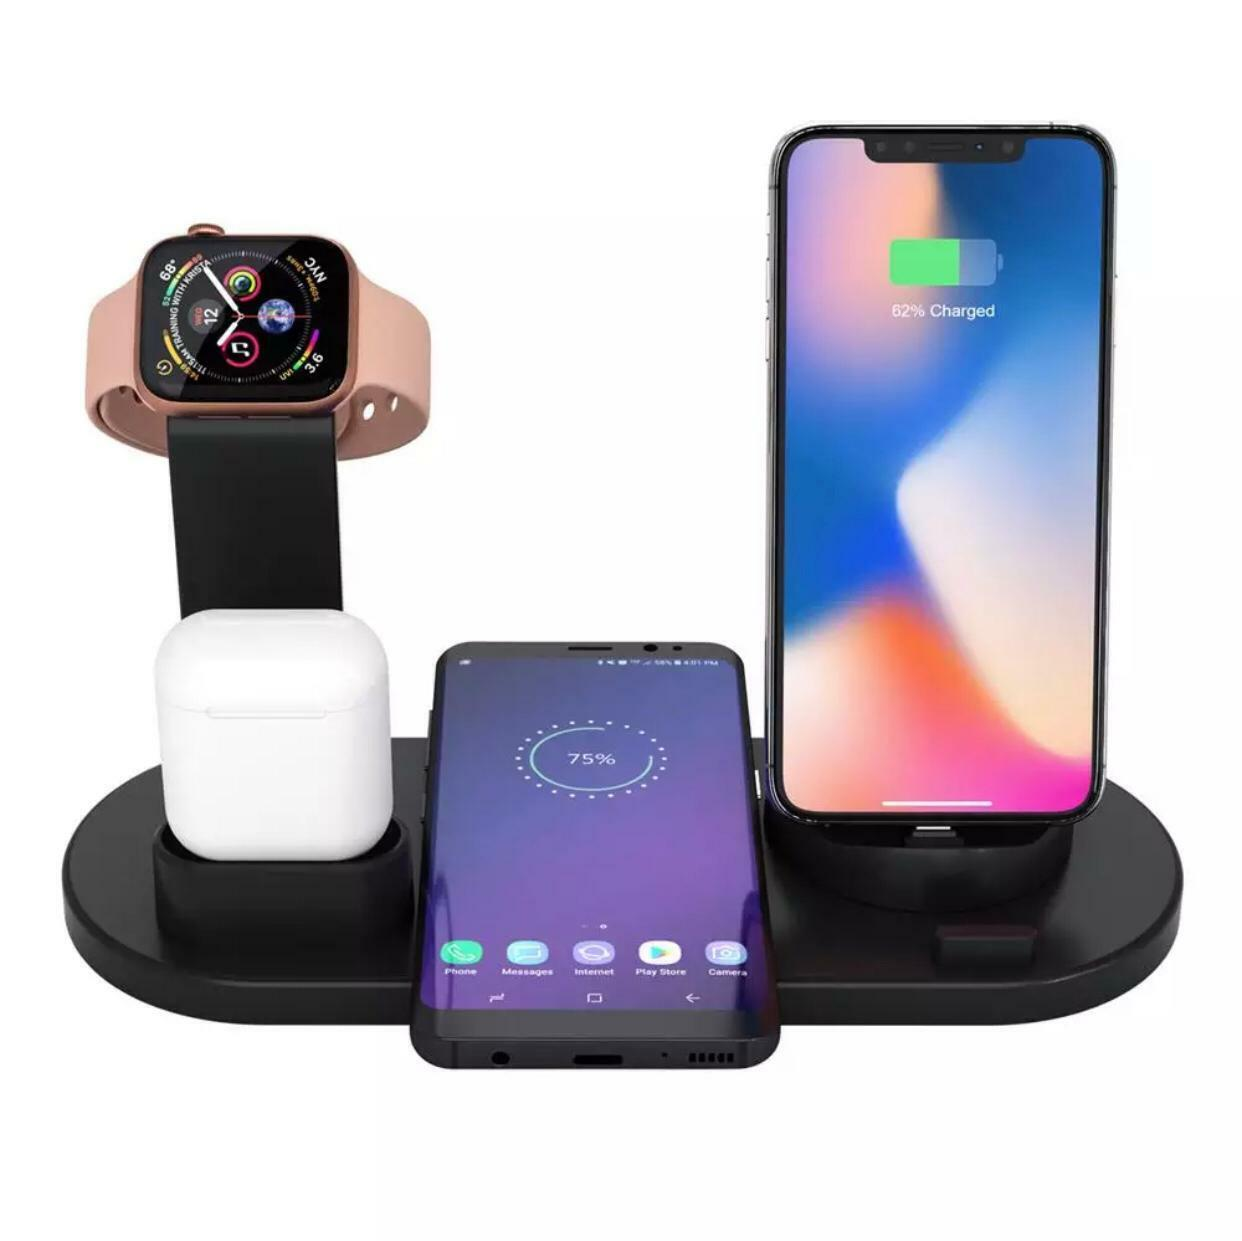 4 in 1 wireless charging station dock